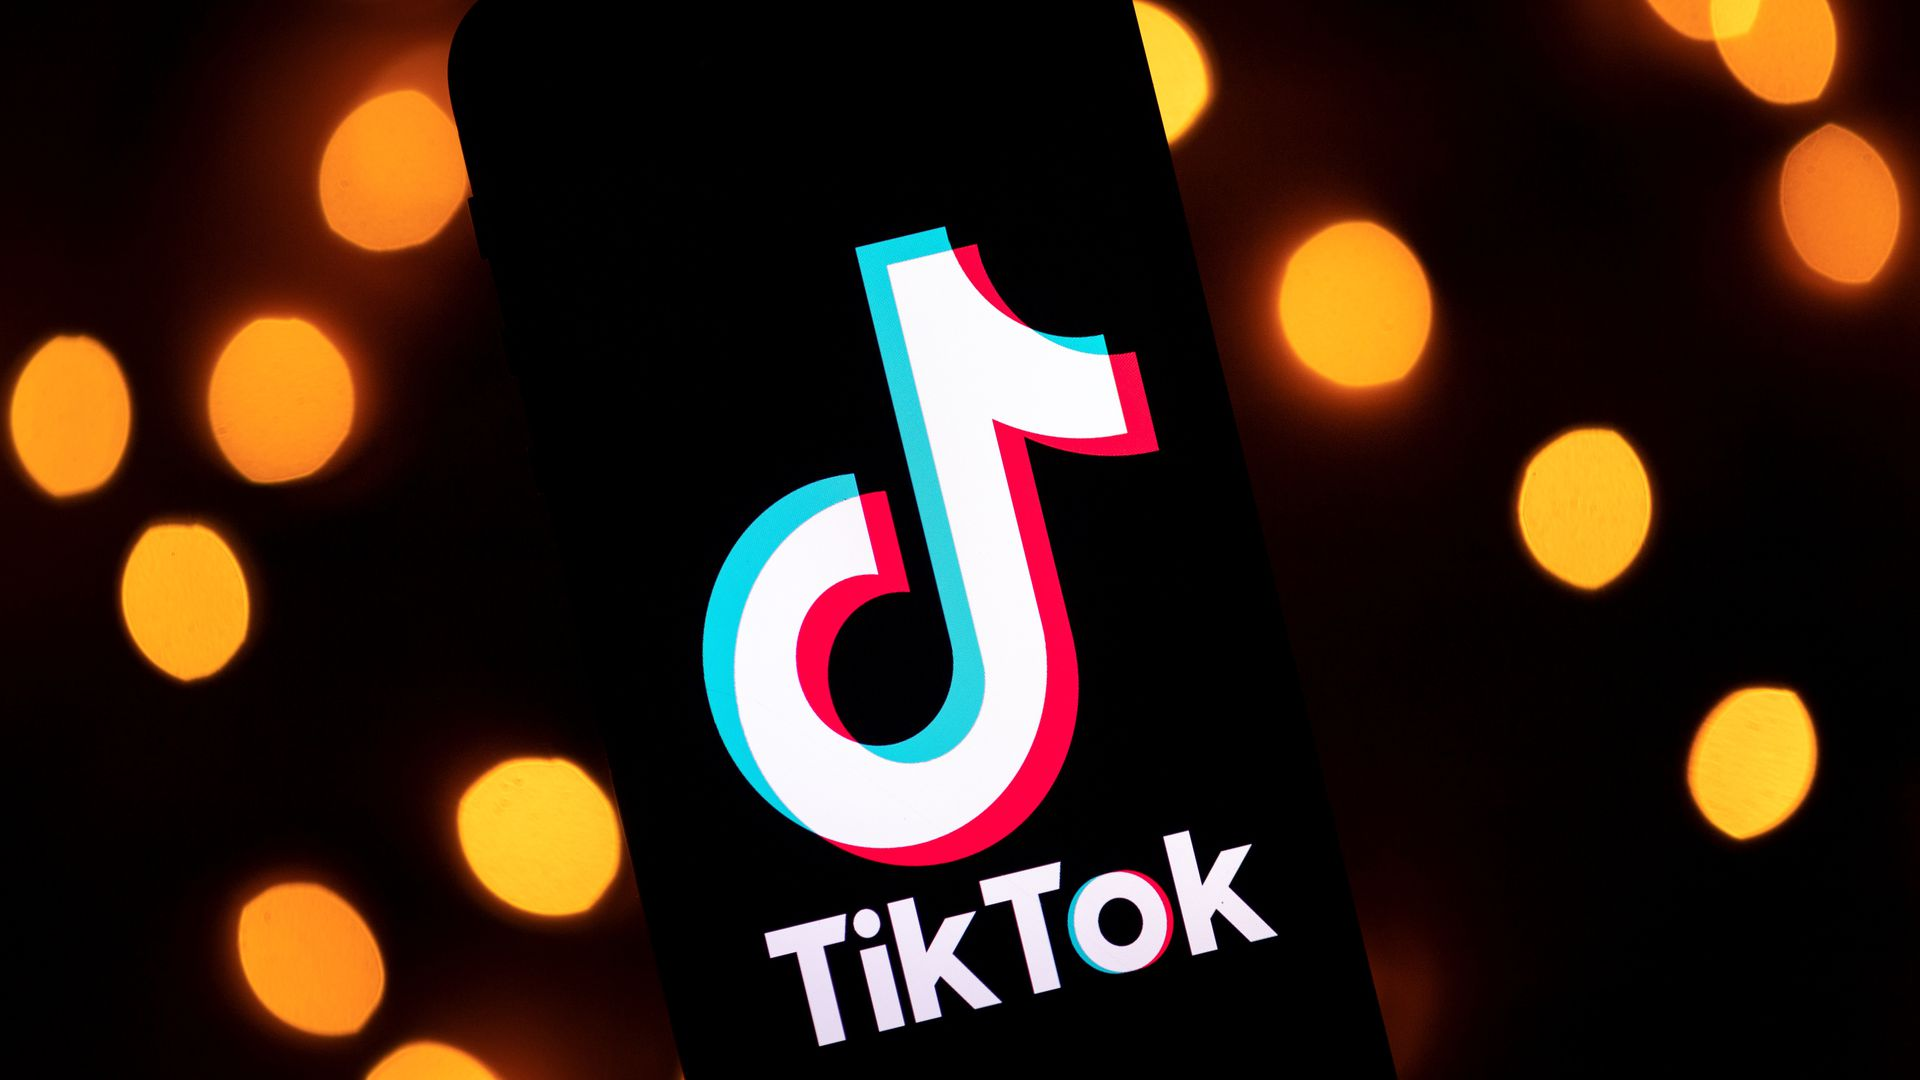 A photo of TikTok's logo with lights behind it.